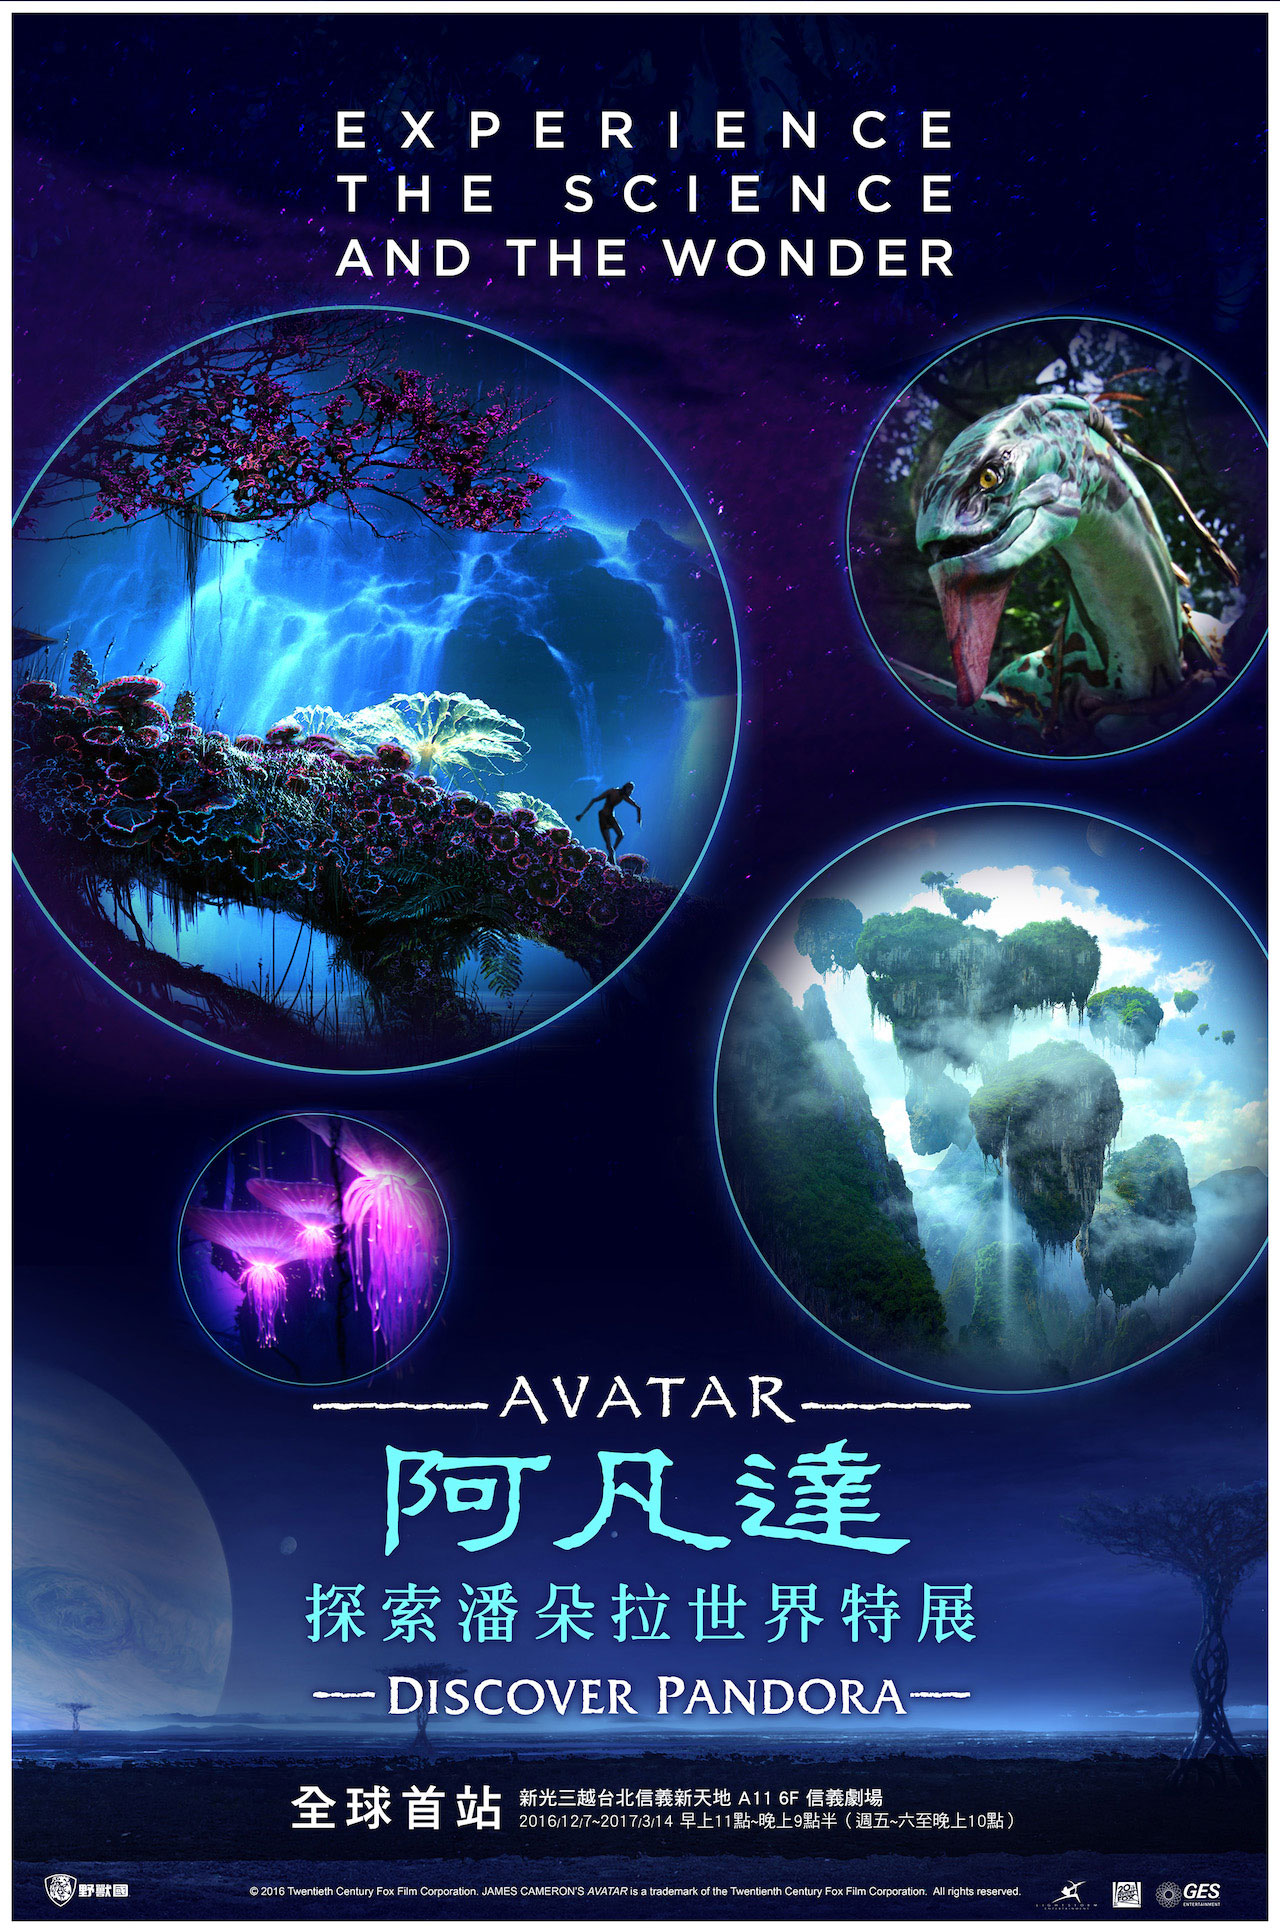 pandora research discover pandora avatar exhibit to open in taiwan  discover pandora avatar exhibit to open in taiwan avatar discover pandora